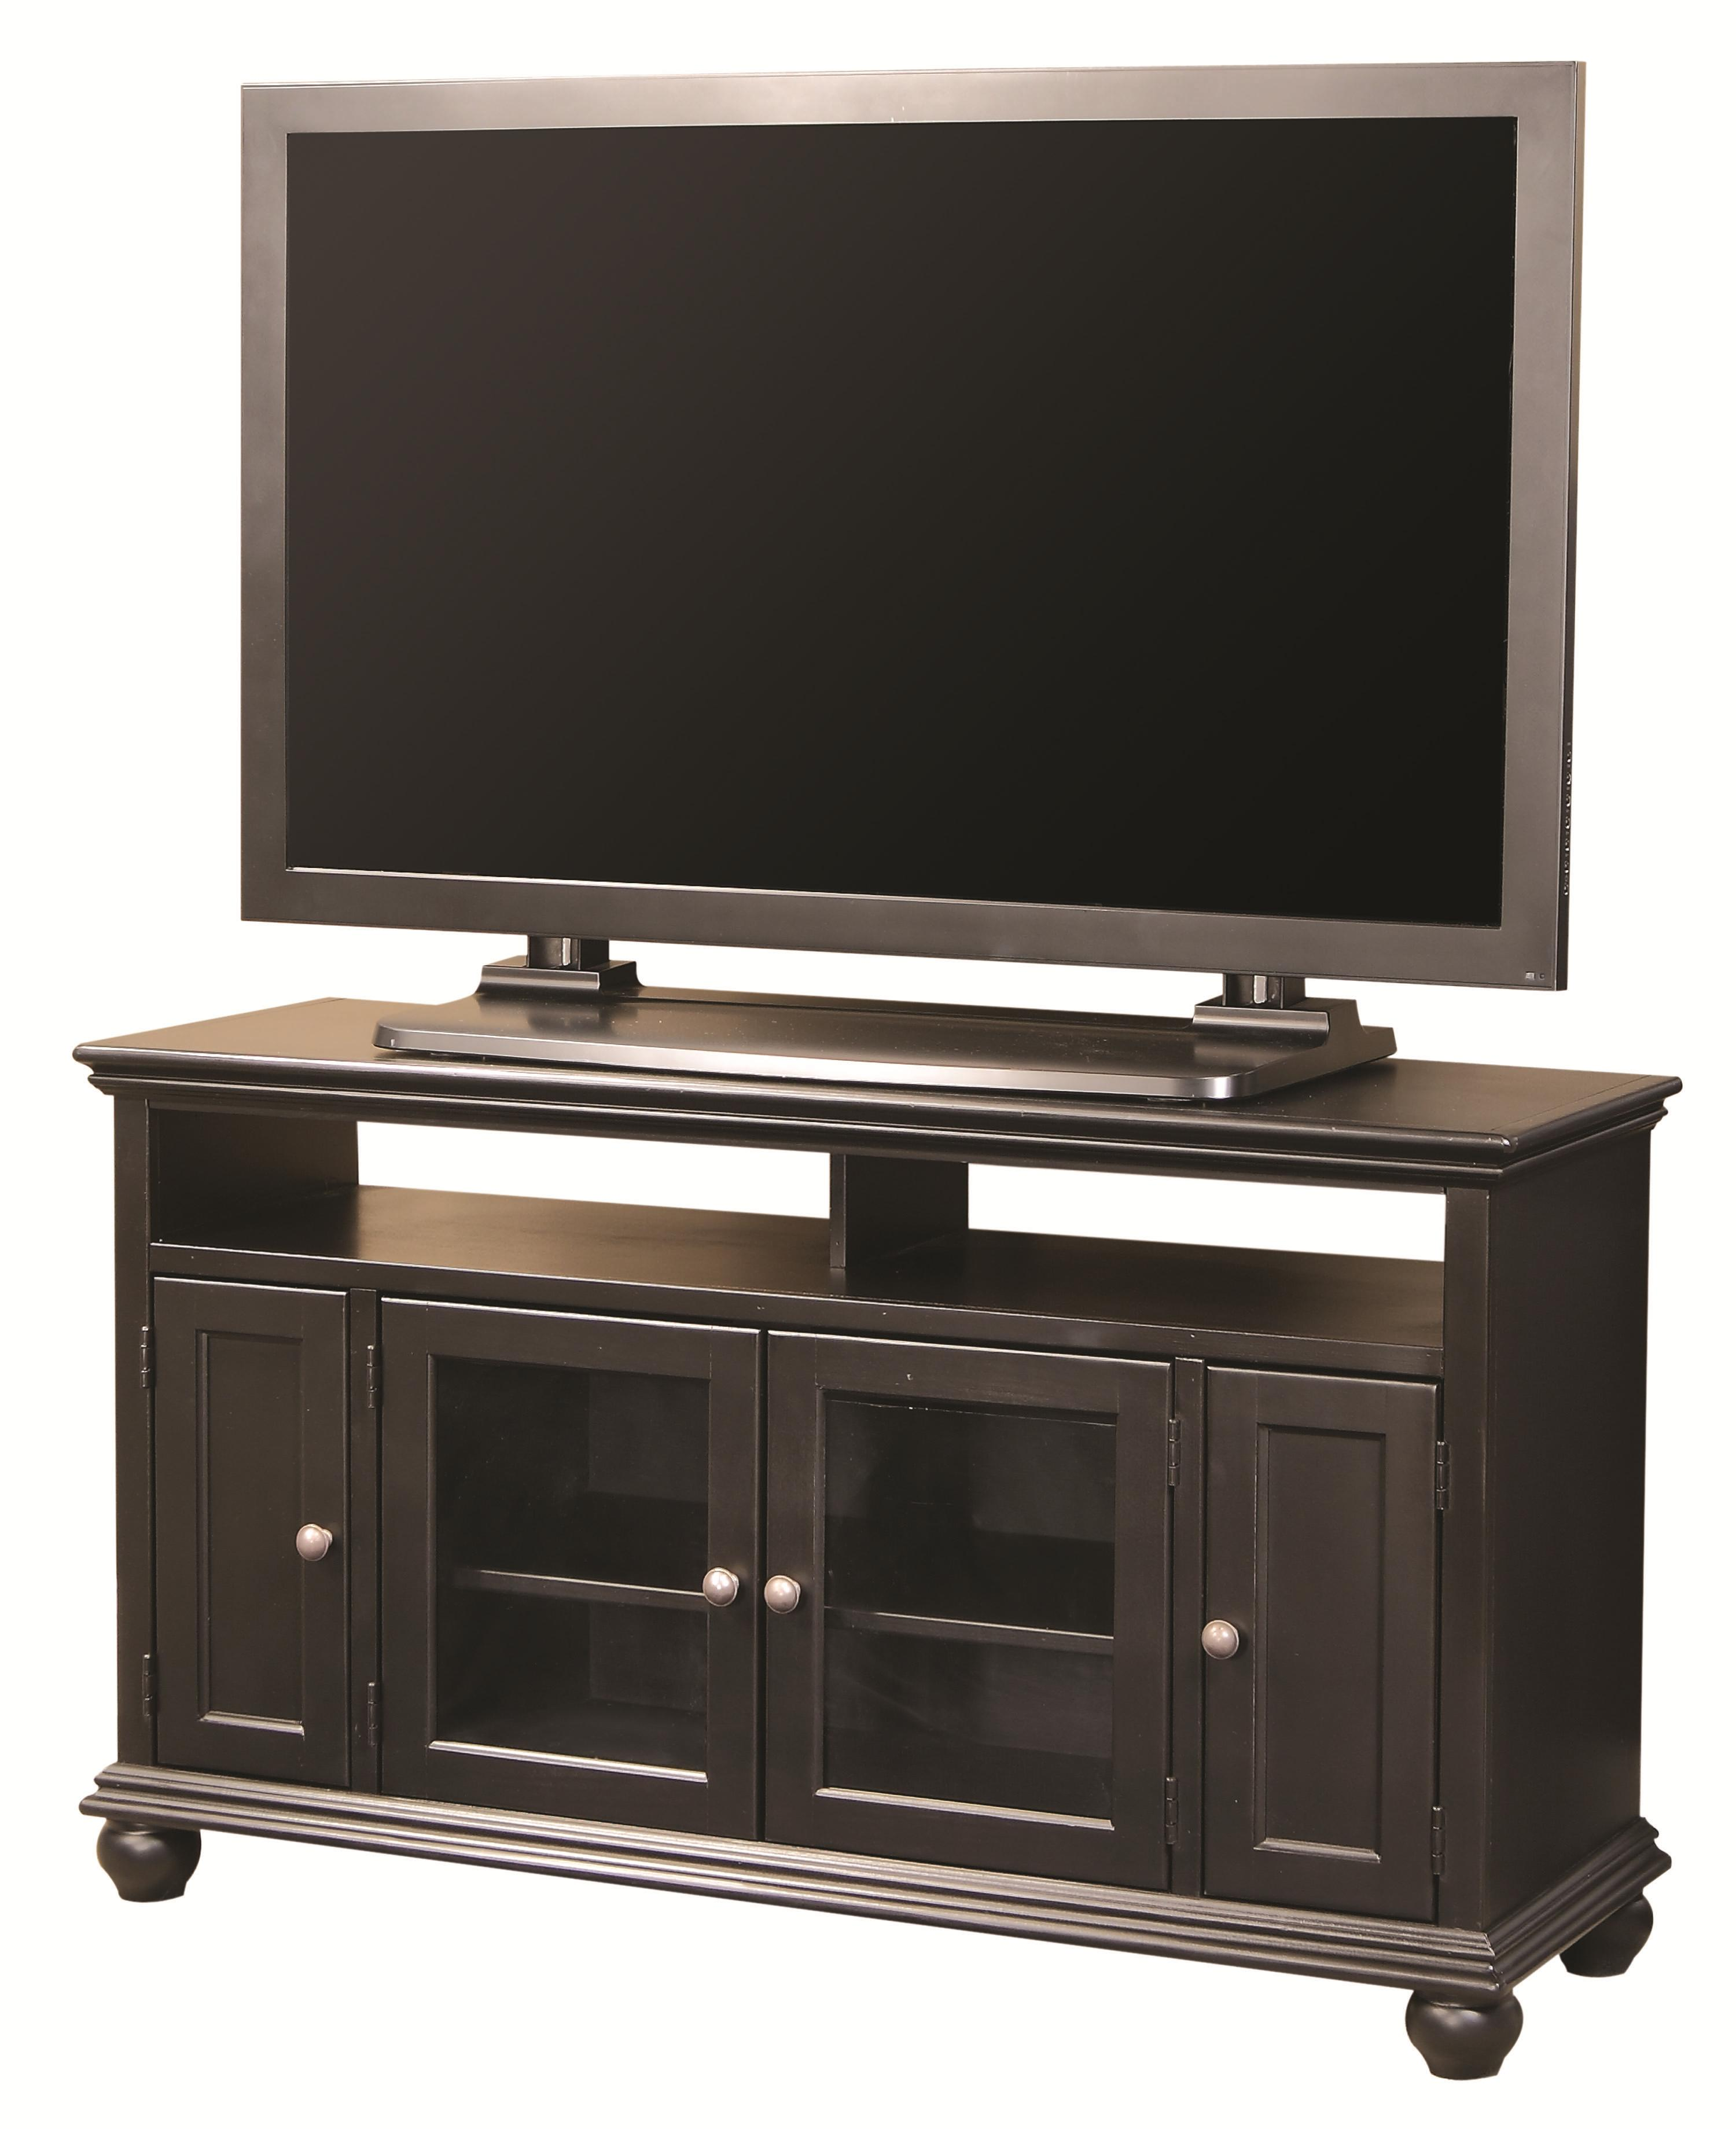 "Aspenhome Casual Traditional 52"" Console - Item Number: CT1625-BLK"